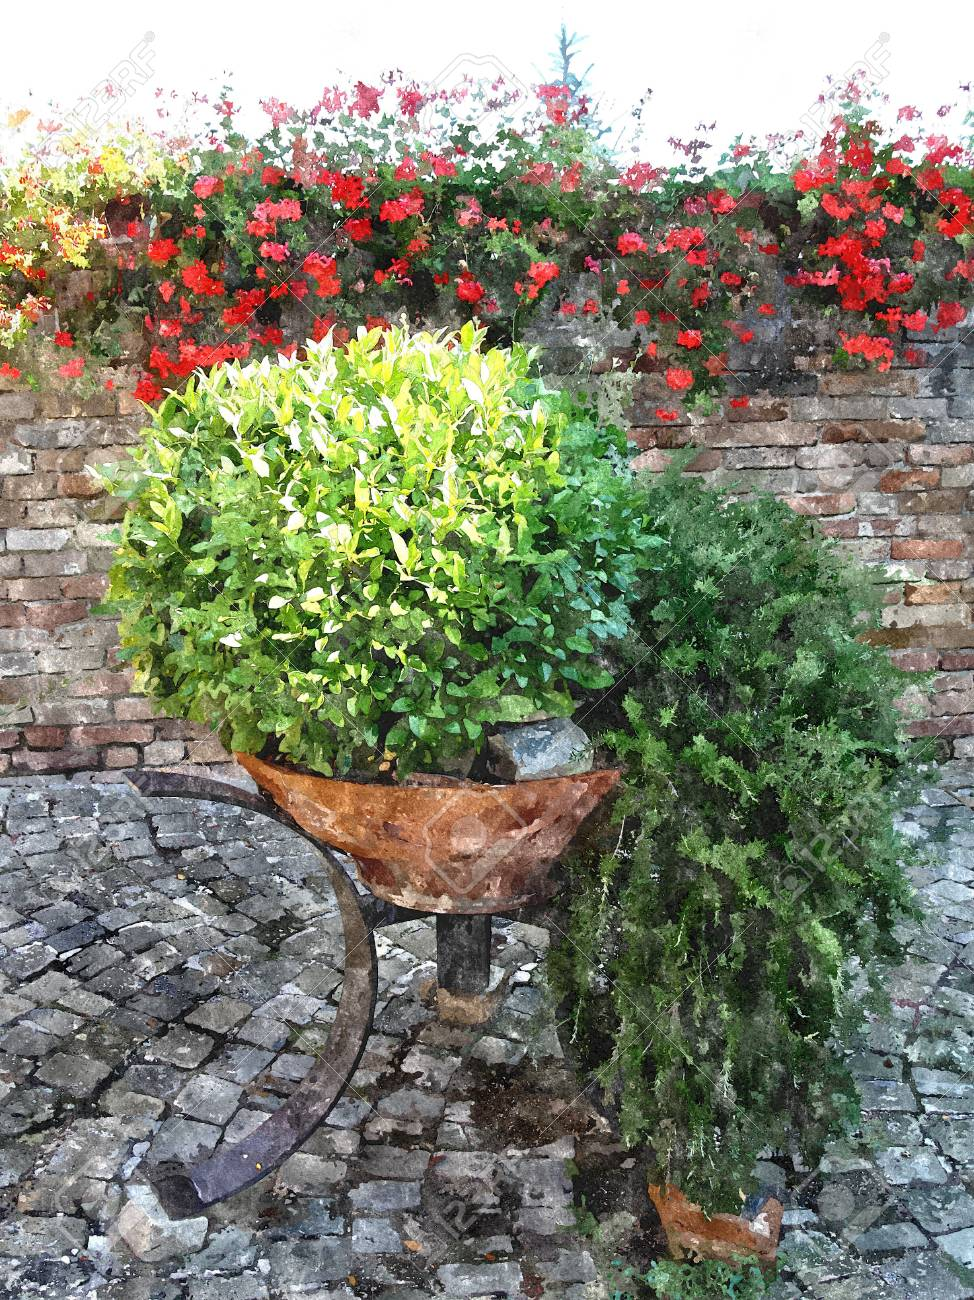 Design Italian Courtyards Around The House. The Effect Of